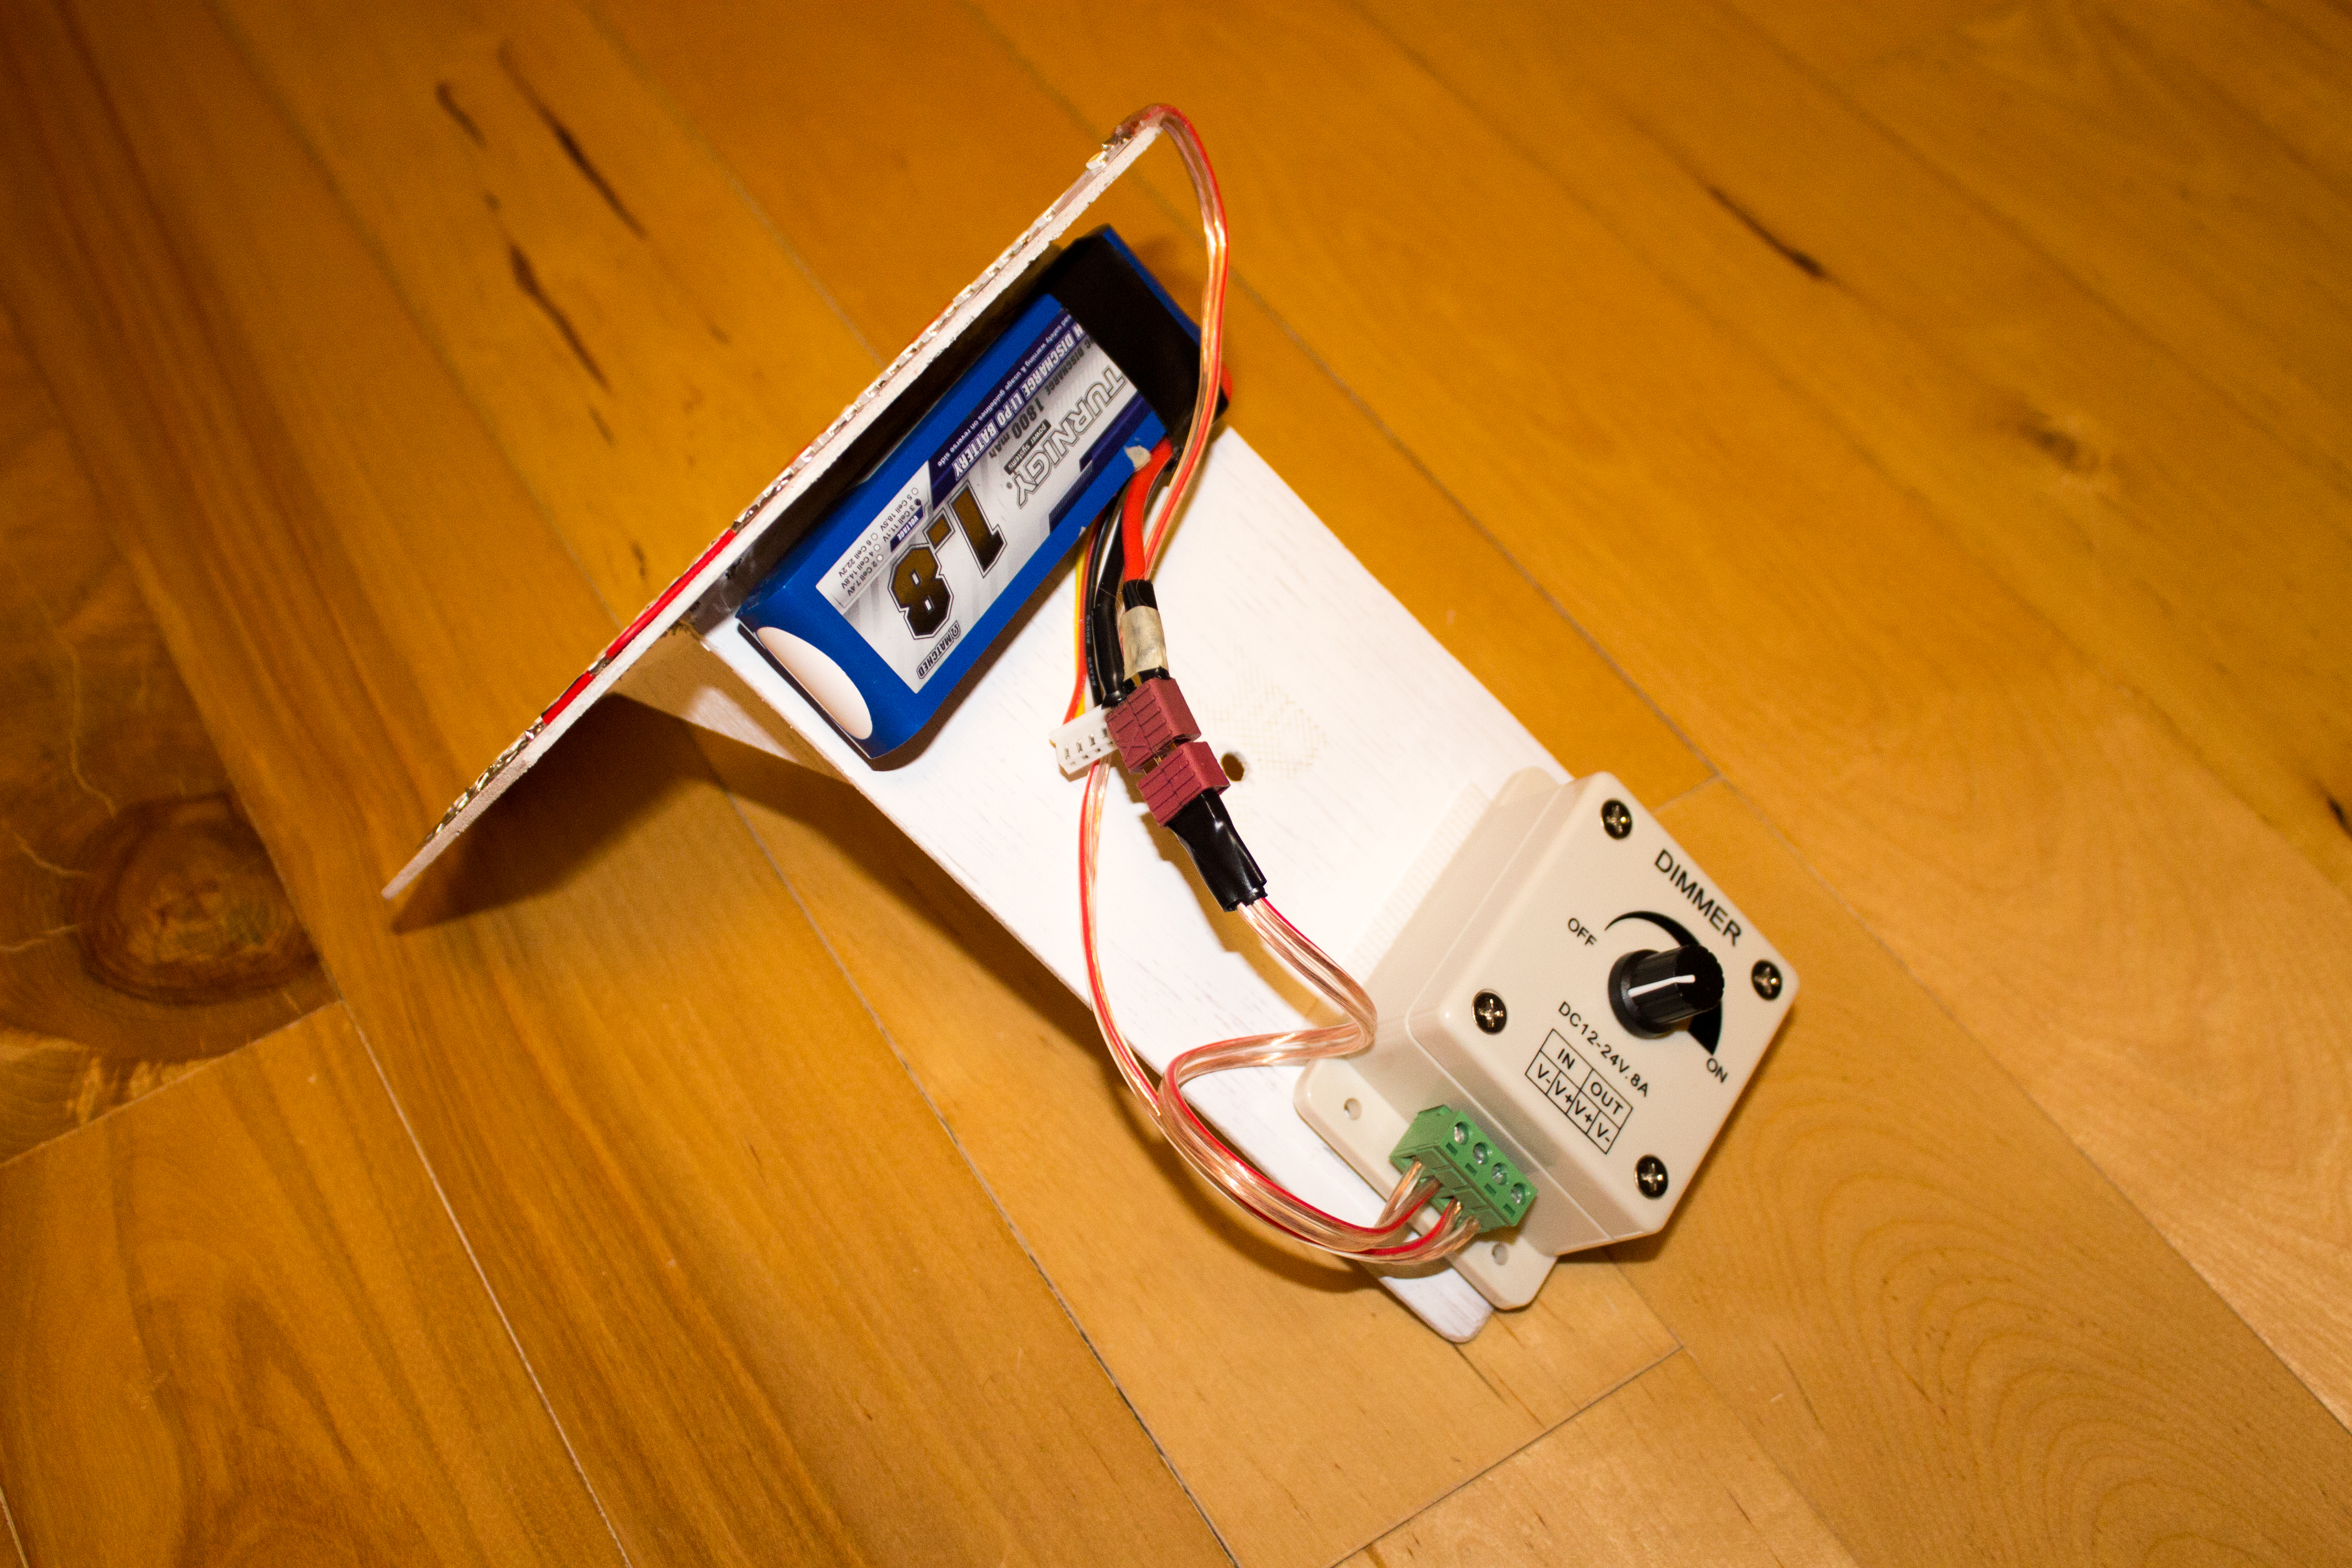 Picture of Connecting the Dimmer and Applying Power